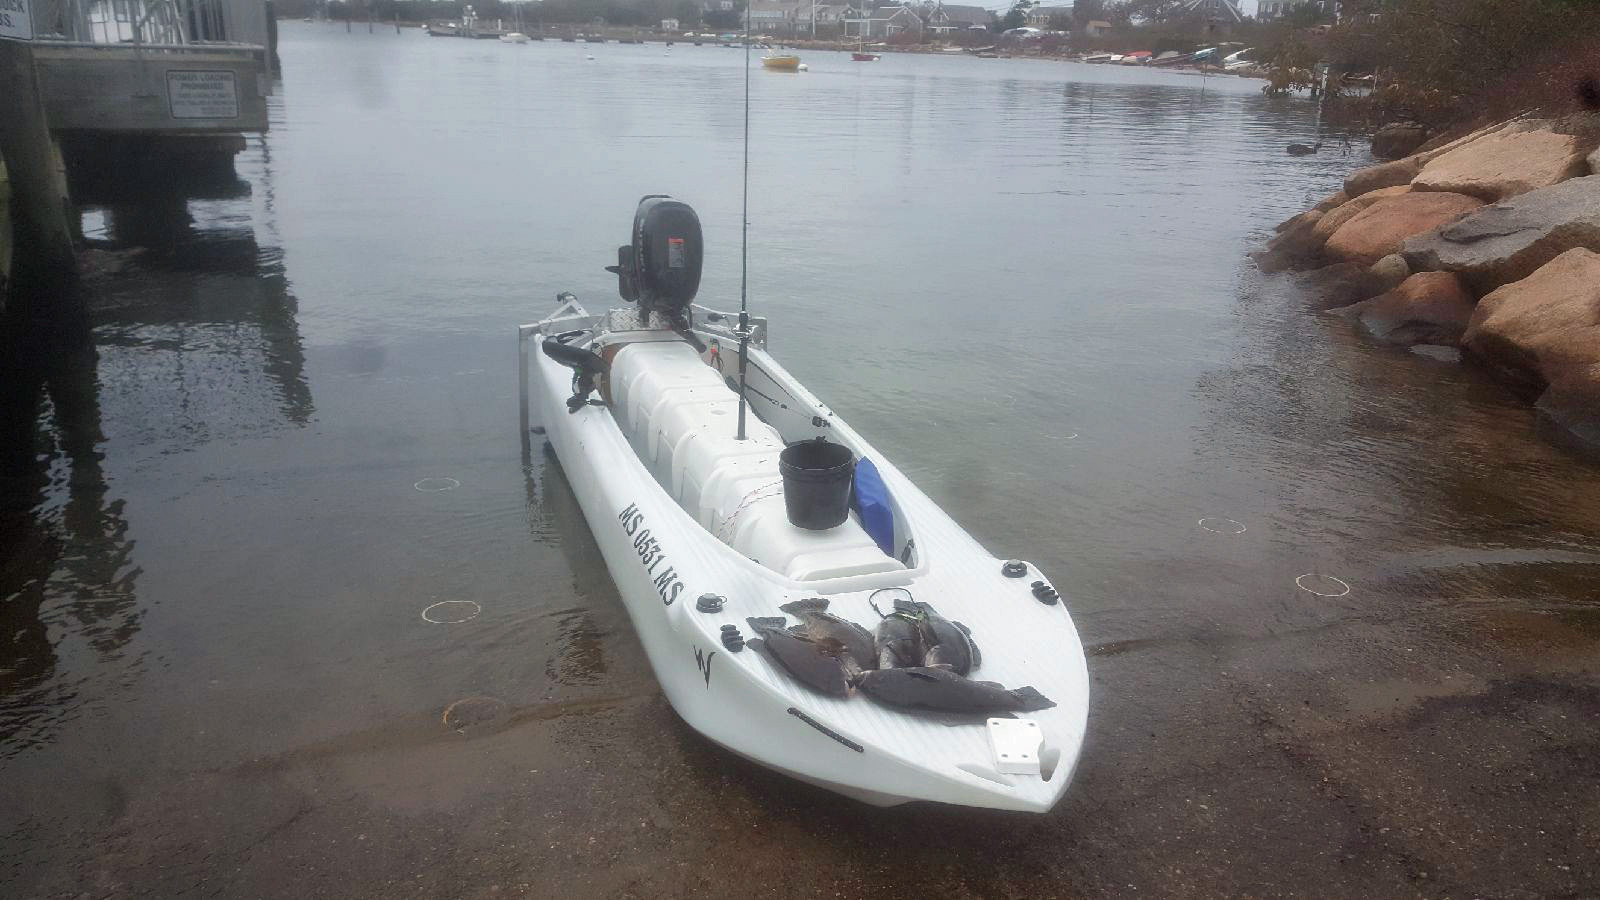 Wavewalk S4 offshore microskiff - Massachusetts